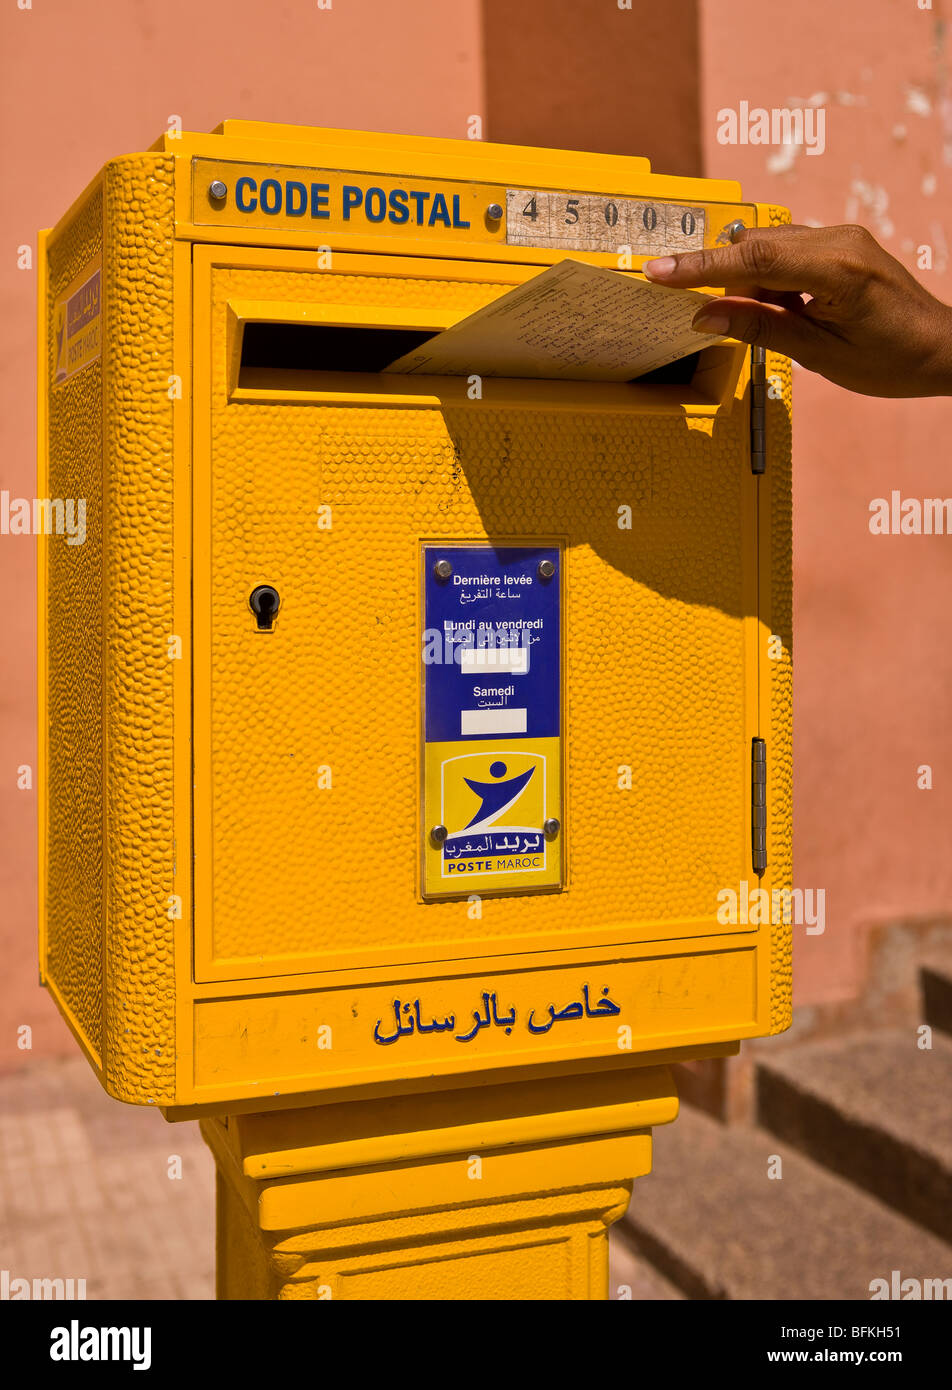 OUARZAZATE, MOROCCO - Mailing postcard in Post office box. - Stock Image